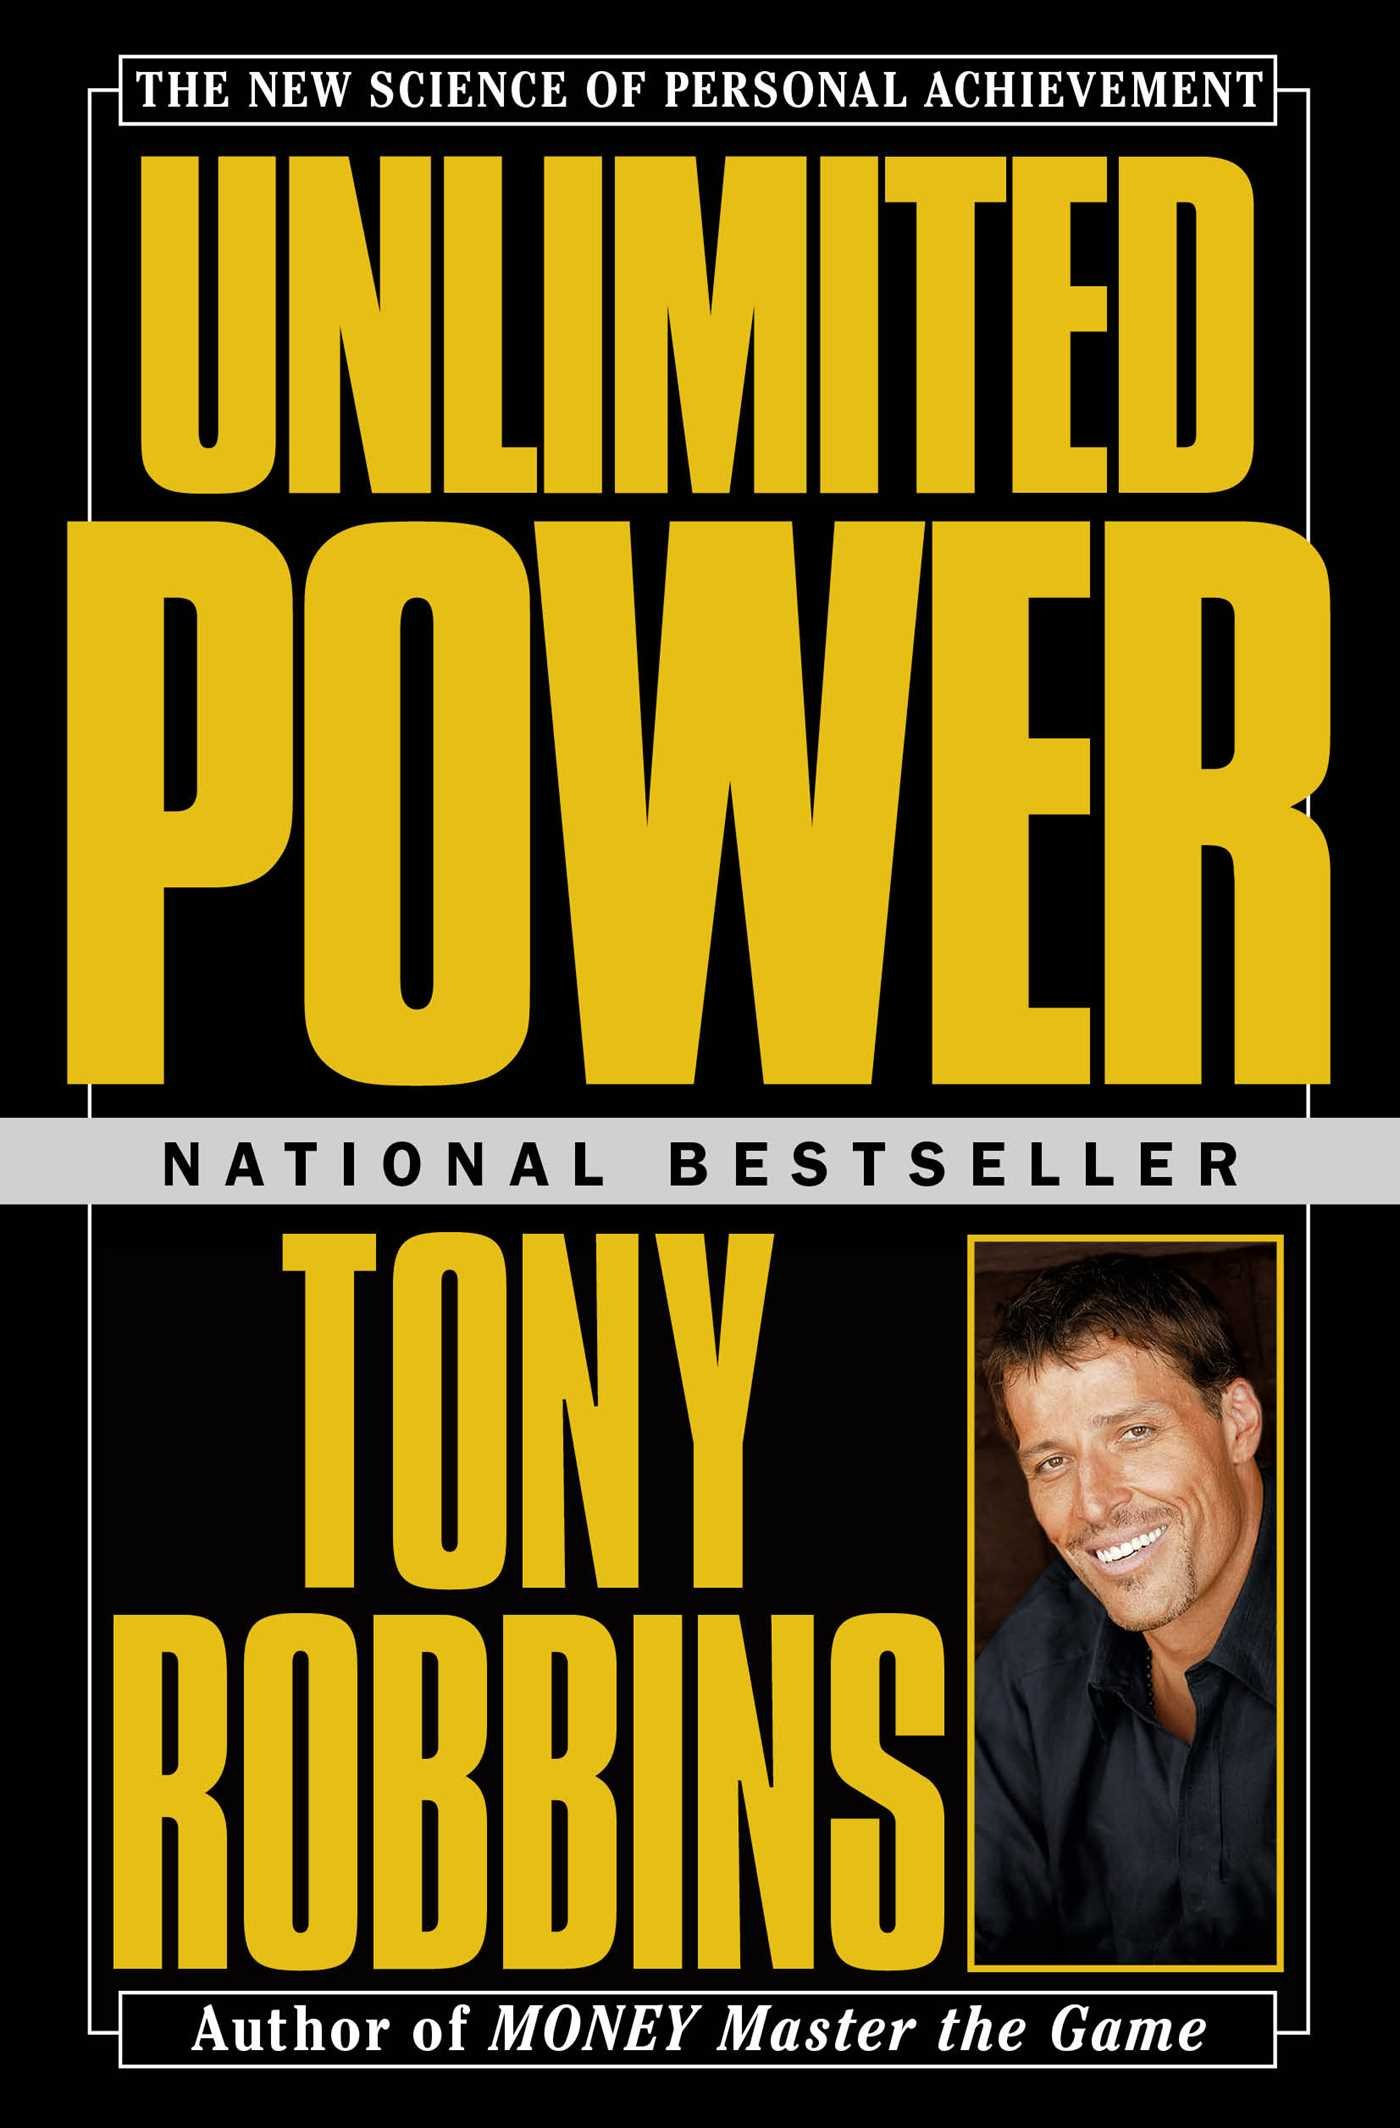 unlimited power - by Anthony RobbinsIf you have ever dreamed of a better life, Unlimited Power will show you how to achieve the extraordinary quality of life you desire and deserve, and how to master your personal and professional life. Anthony Robbins has proven to millions through his books, tapes, and seminars that by harnessing the power of the mind you can do, have, achieve, and create anything you want for your life. He has shown heads of state, royalty, Olympic and professional athletes, movie stars, and children how to achieve. With Unlimited Power, he passionately and eloquently reveals the science of personal achievement and teaches you:* How to find out what you really want; * The Seven Lies of Success; * How to reprogram your mind in minutes to eliminate fears and phobias; * The secret of creating instant rapport with anyone you meet; * How to duplicate the success of others; * The Five Keys to Wealth and HappinessUnlimited Power is a revolutionary fitness book for the mind. It will show you, step by step, how to perform at your peak while gaining emotional and financial freedom, attaining leadership and self-confidence, and winning the cooperation of others. It will give you the knowledge and the courage to remake yourself and your world. Unlimited Power is a guidebook to superior performance in an age of success.